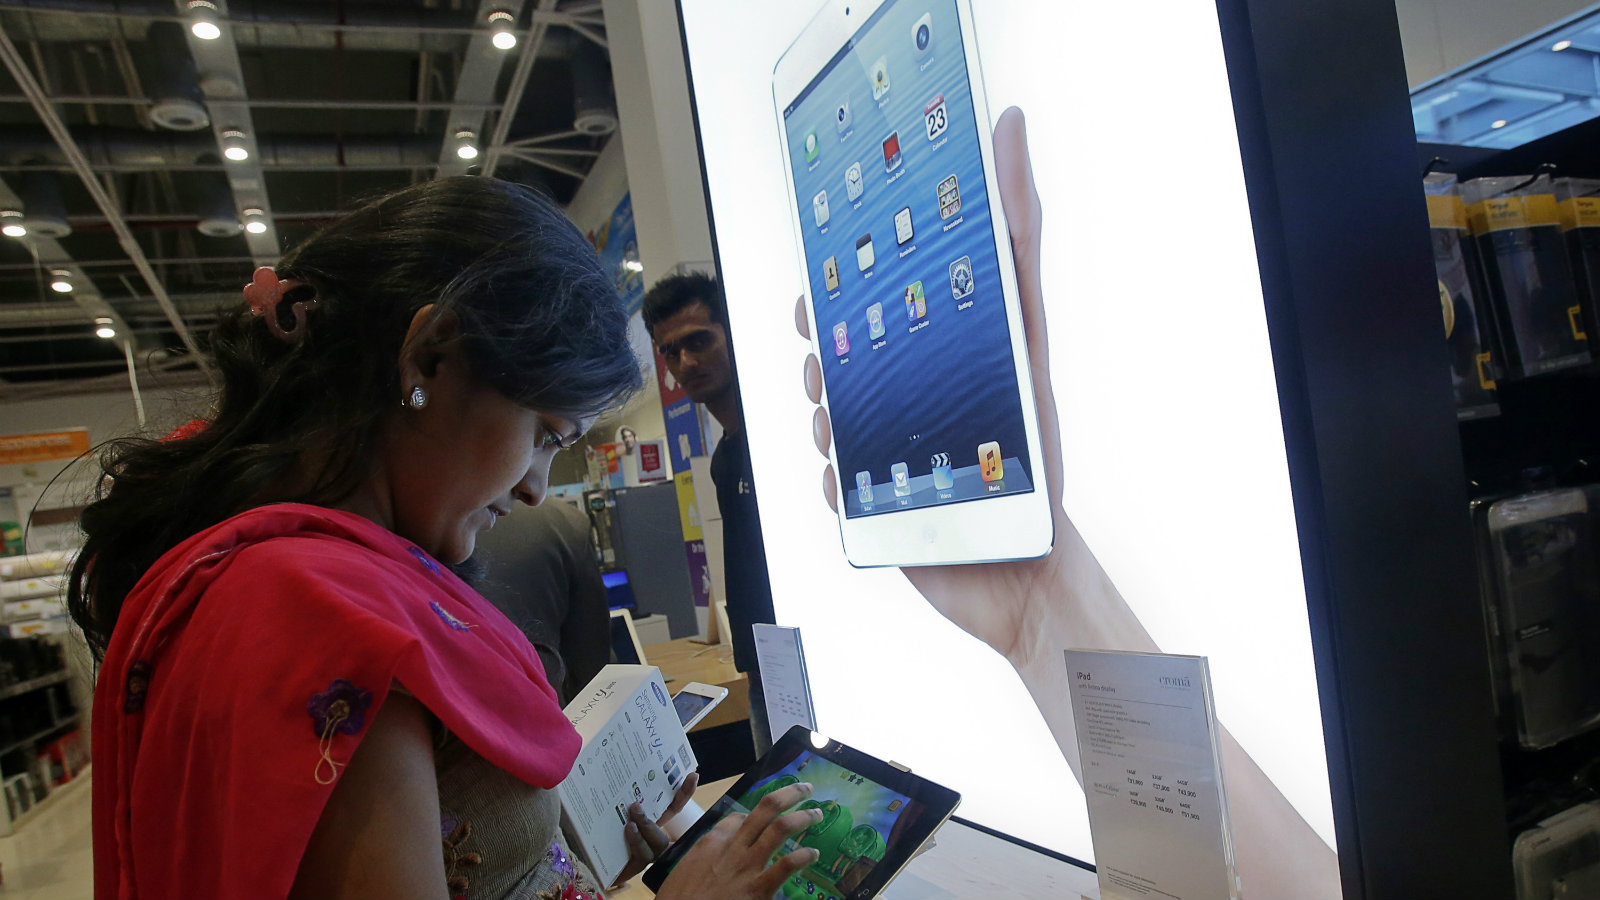 A customer tries out an Apple iPad Mini in the Apple specialty section of a Croma retail store in Mumbai February 22, 2013. The store offers Apple products including iPhones and iPads on instalment plans. More than four years after it started selling iPhones in India, Apple Inc is now aggressively pushing the iconic device through instalment payment plans that make it more affordable, a new distribution model and heavy marketing blitz. The result: iPhone shipments to India between October and December of 2012 nearly tripled to 250,000 units from 90,000 in the previous quarter, according to an estimate by Jessica Kwee, a Singapore-based analyst at consultancy Canalys. Picture taken February 22, 2013.